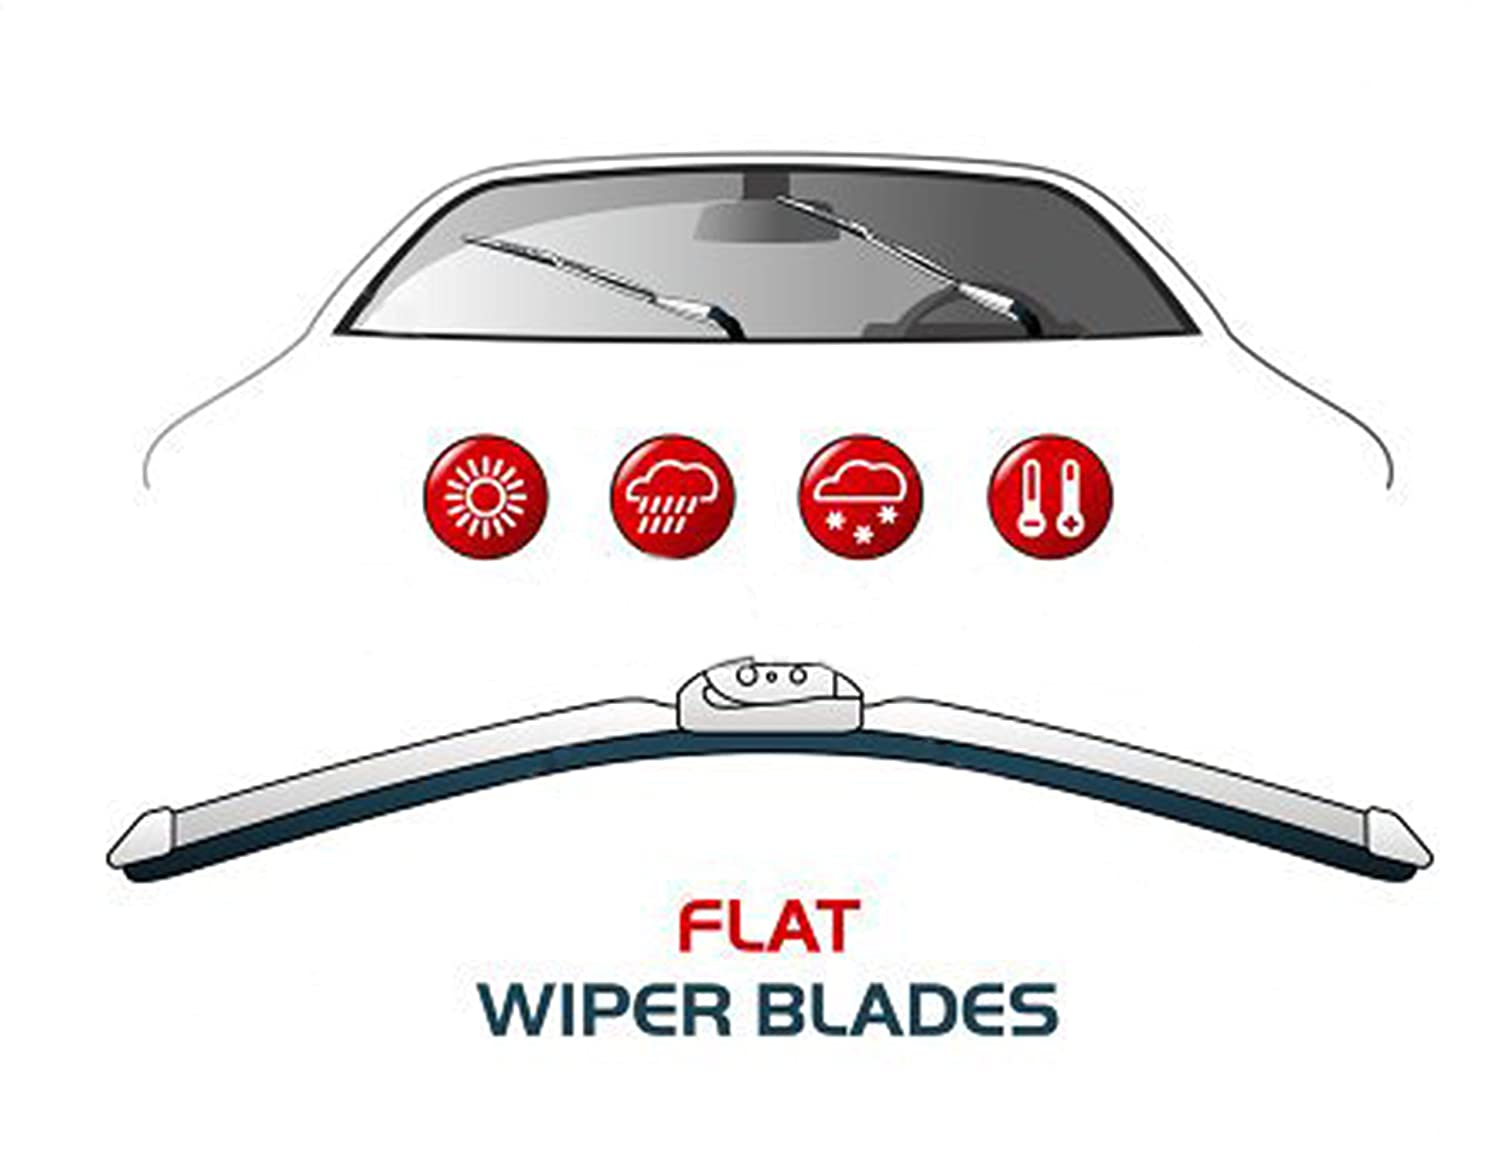 Amazon.com: Soft Flat Wiper Blade-Quick fit Multifunction type Easy to install (19